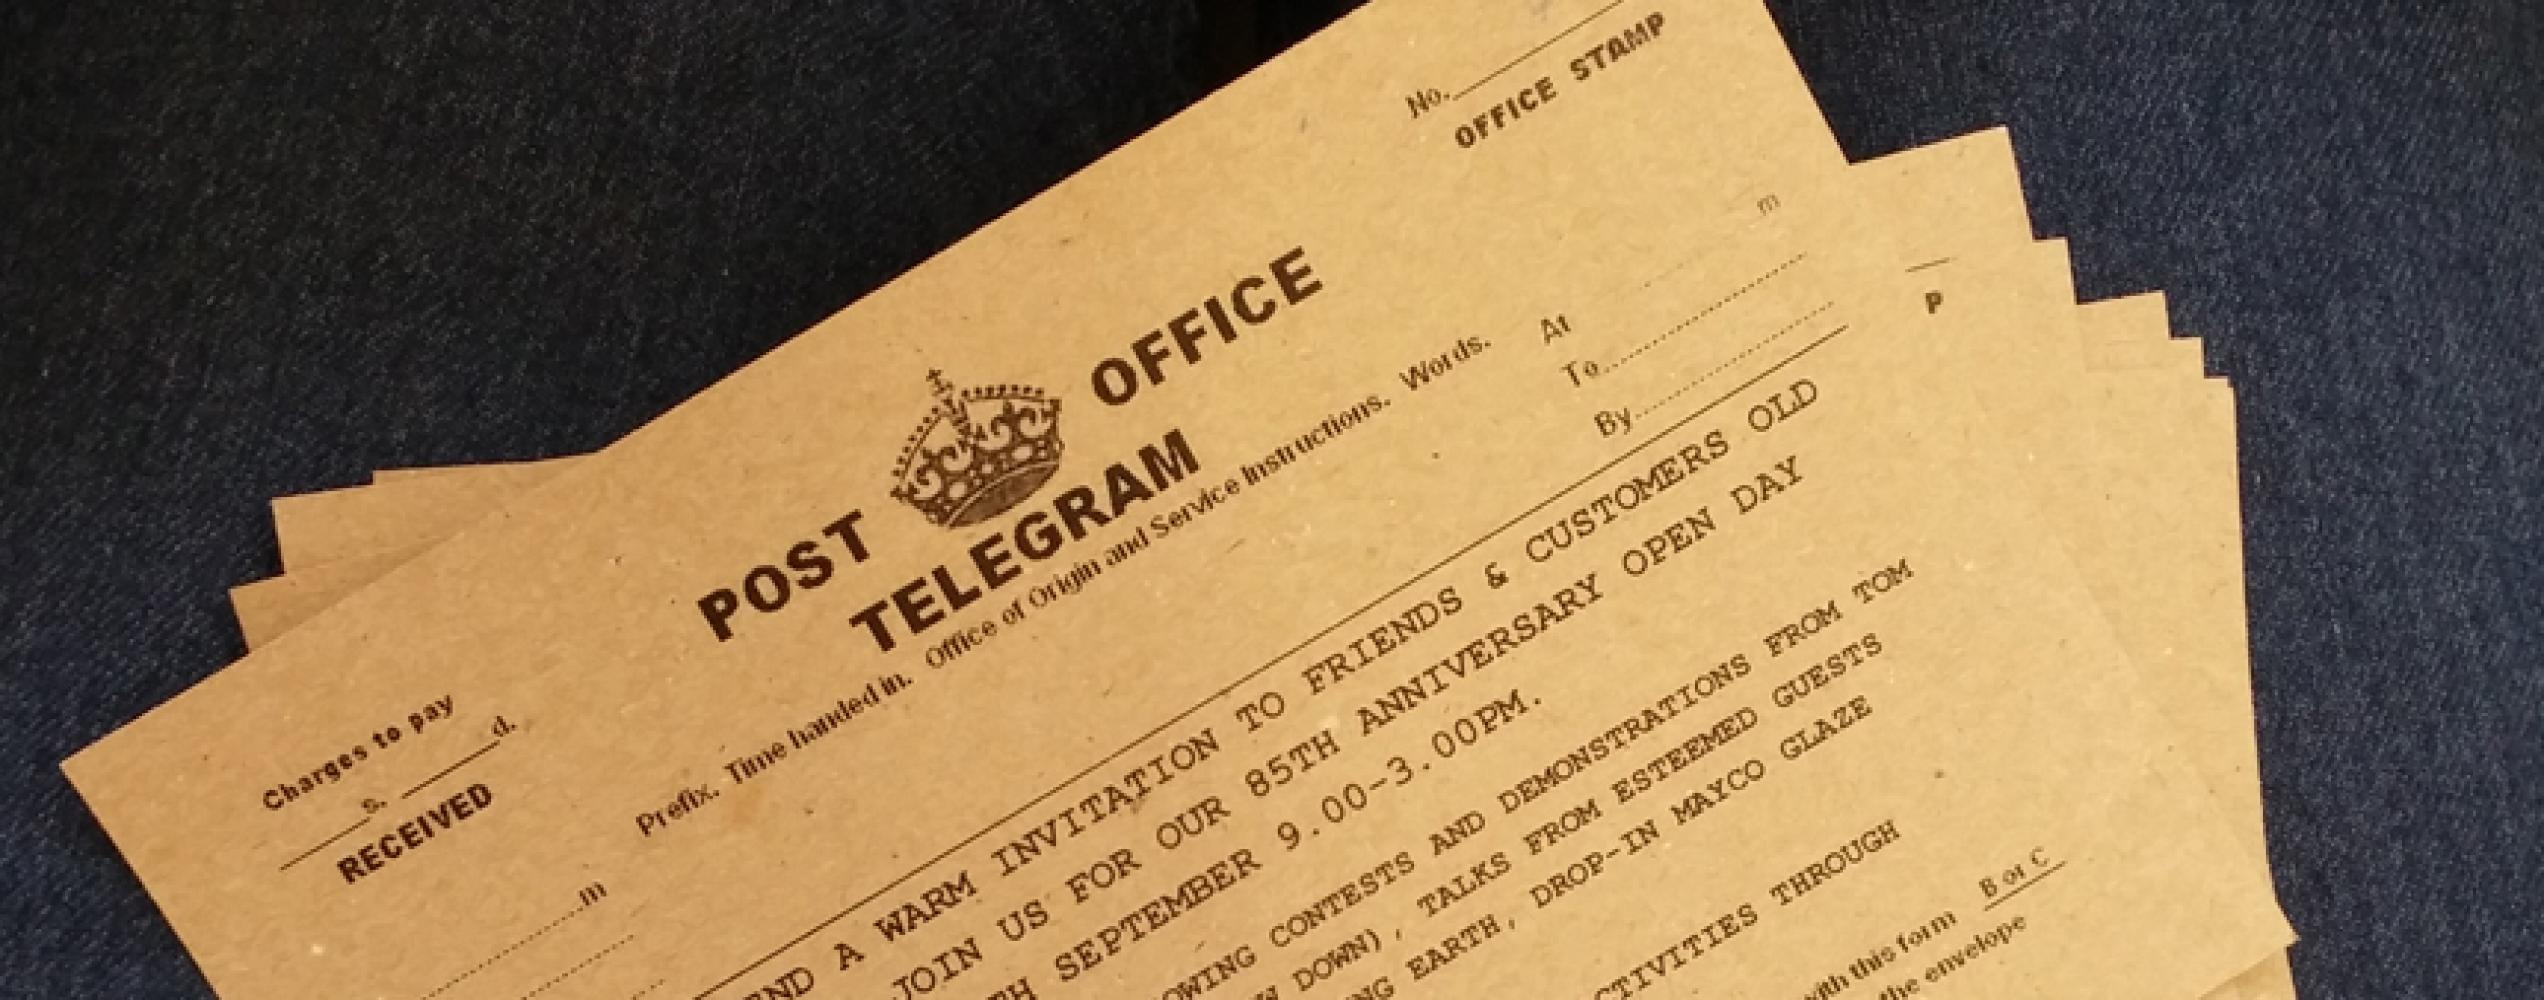 There's a telegram for you...